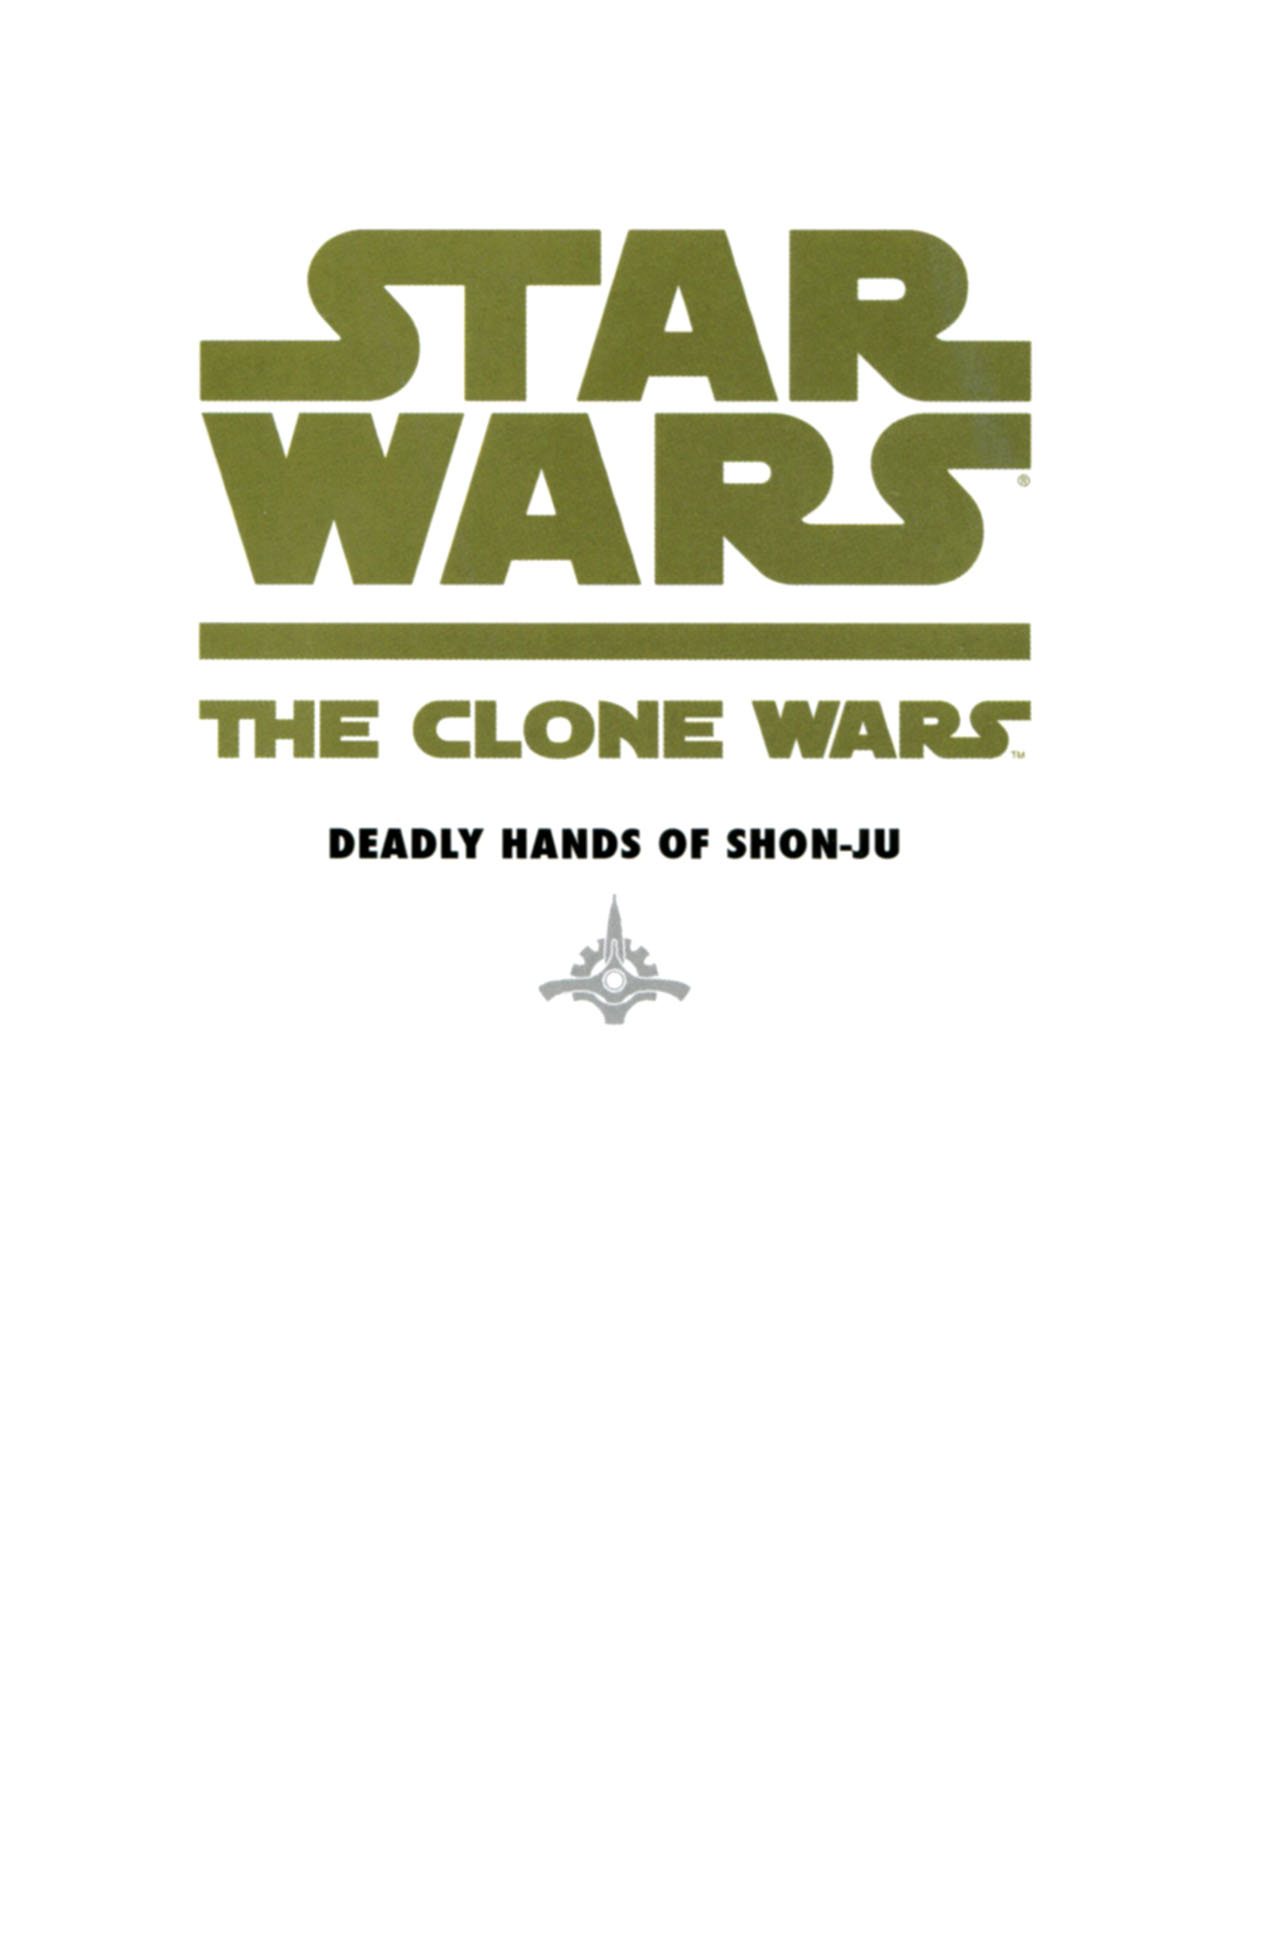 Read online Star Wars: The Clone Wars - Deadly Hands of Shon-Ju comic -  Issue # Full - 3